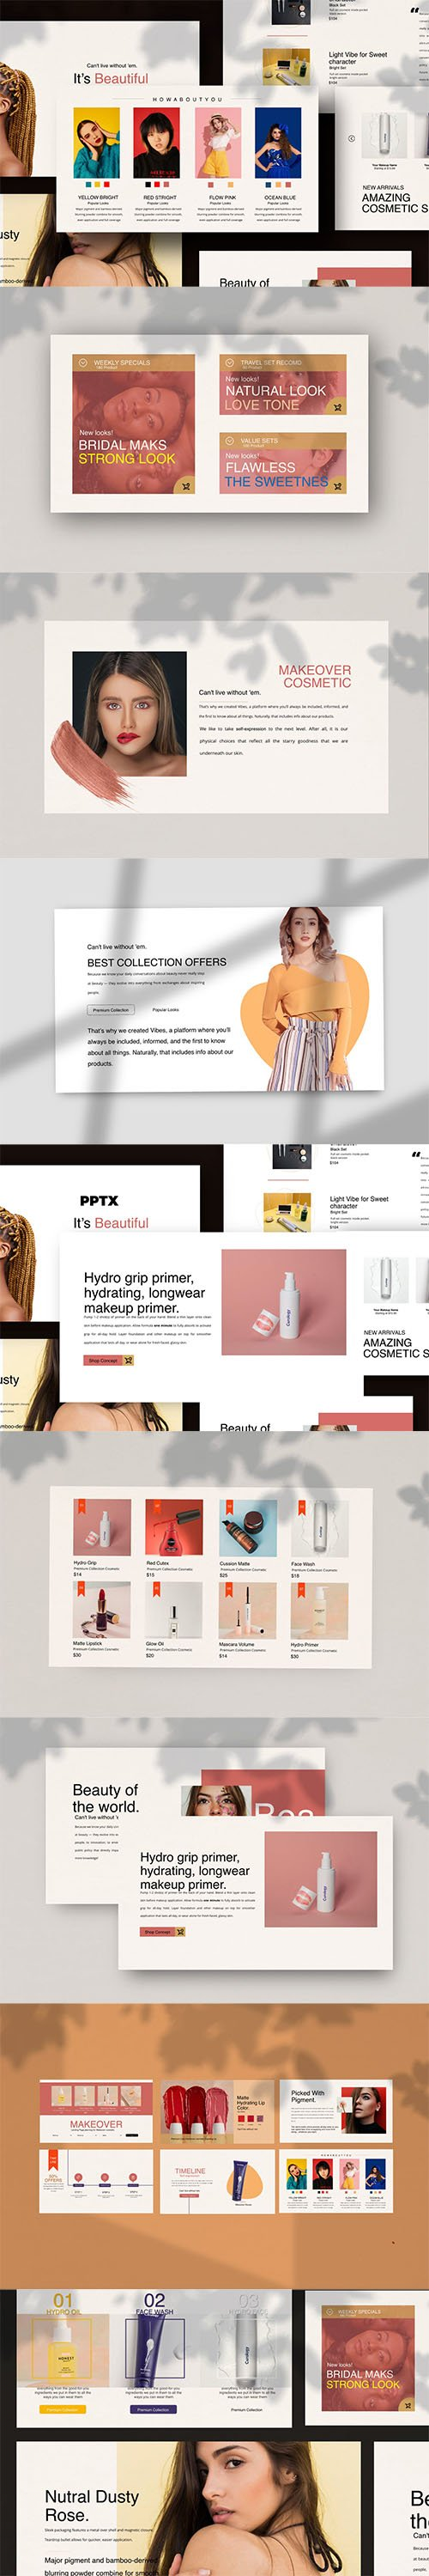 Cosmetics - Powerpoint, Keynote and Google Slides Templates